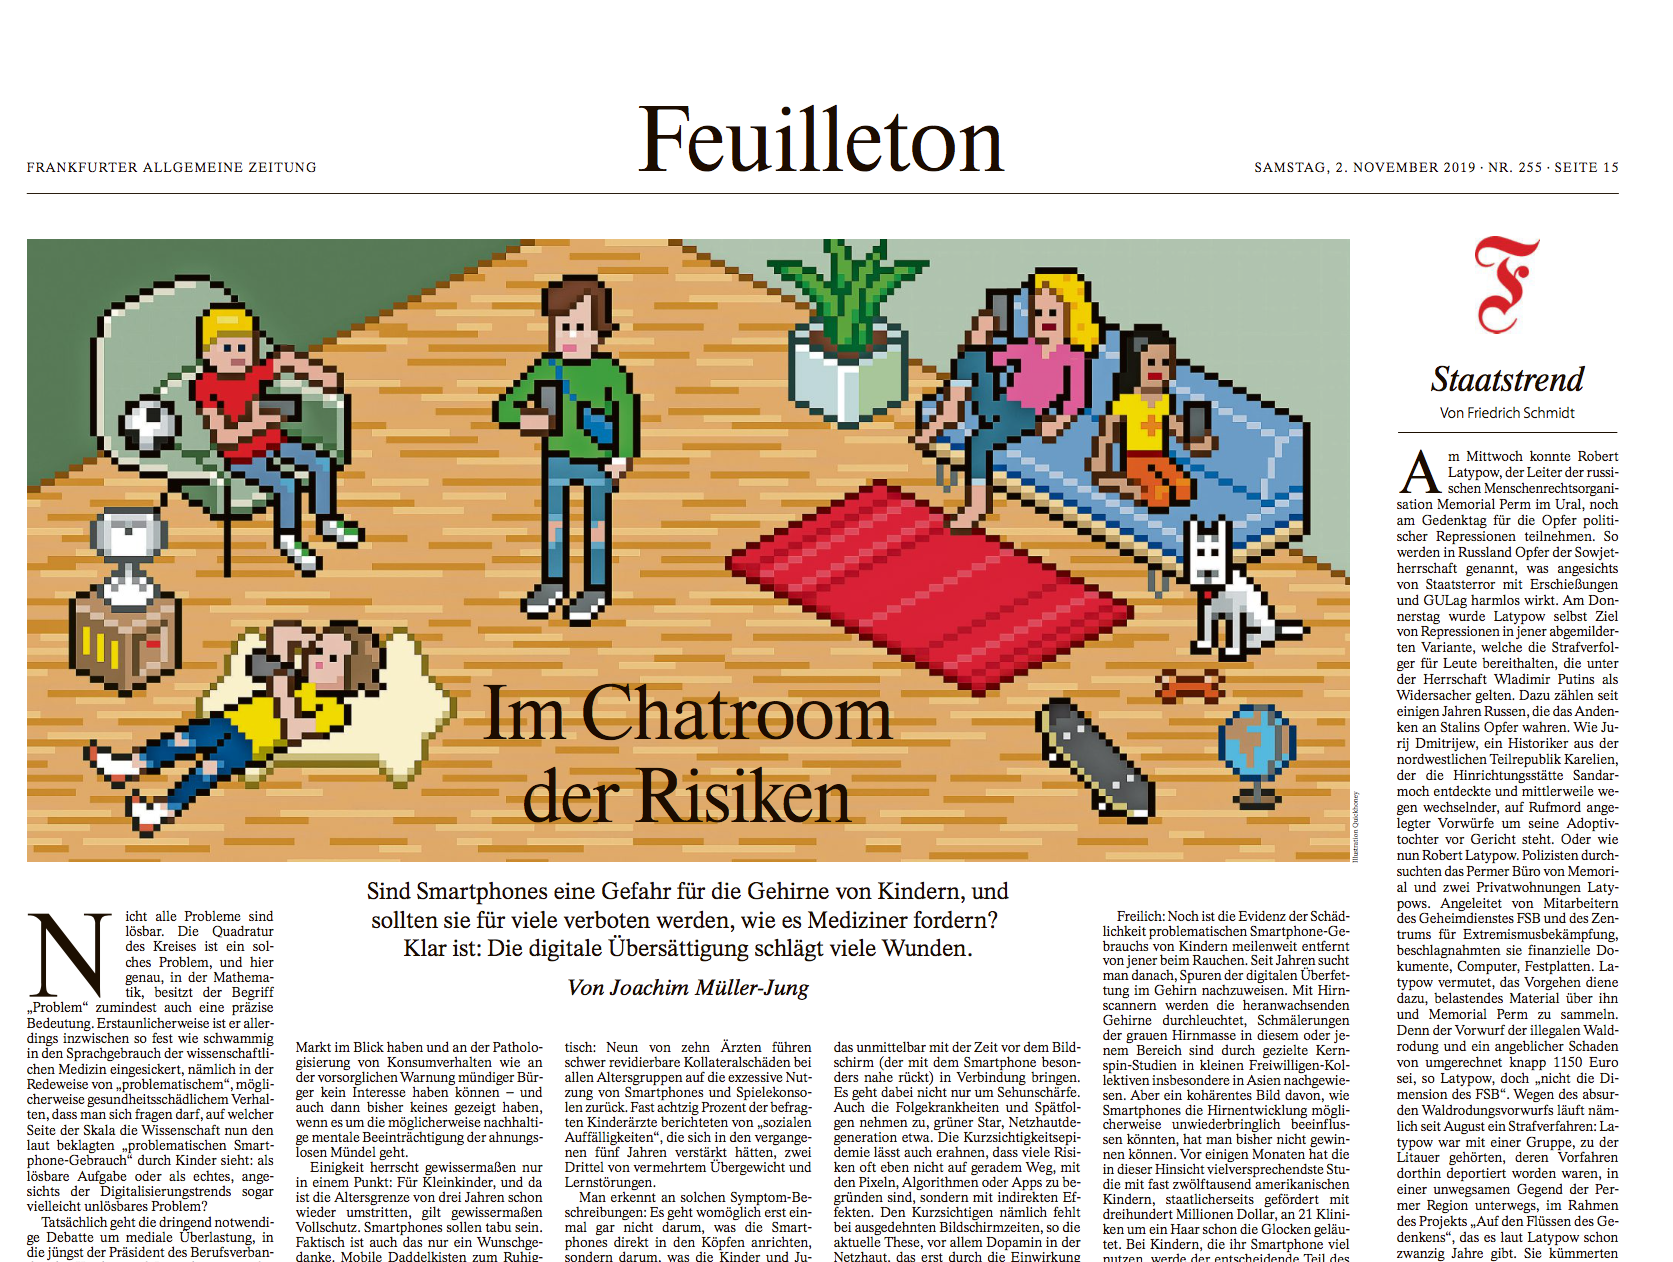 Illustration for FAZ